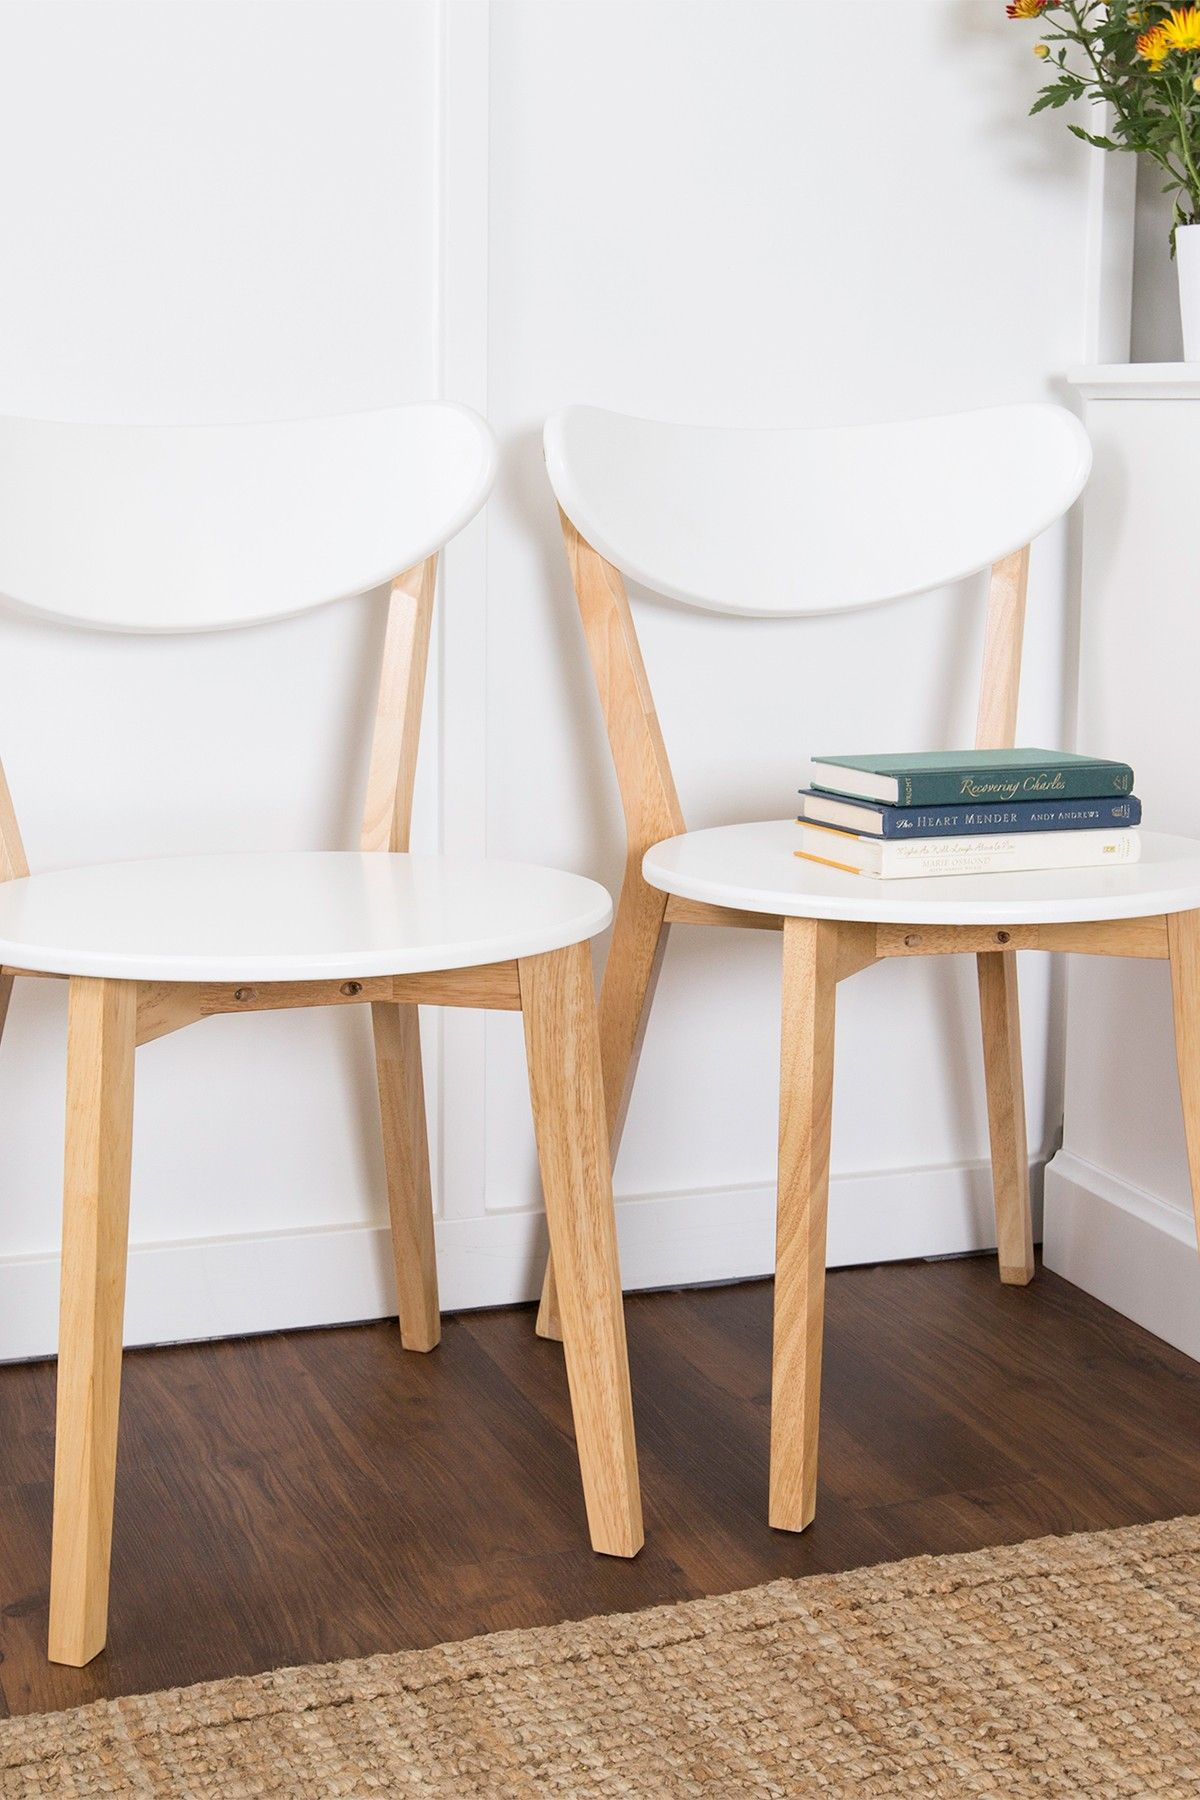 White Retro Modern Wood Kitchen Dining Chairs Set of 2 by Walker